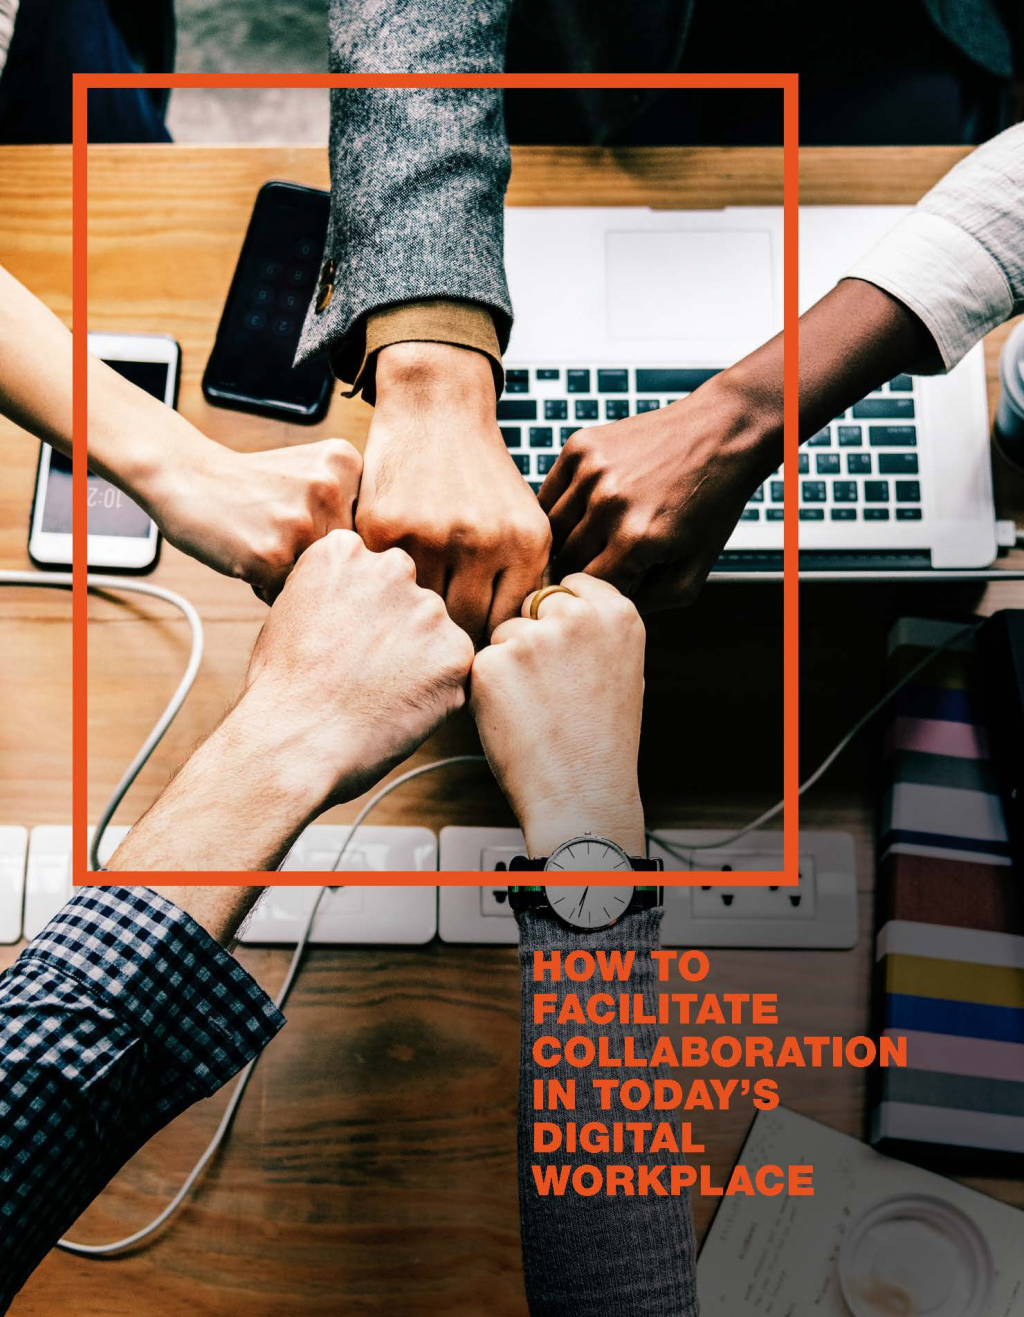 Read How to Facilitate Collaboration in today's Digital Workplace